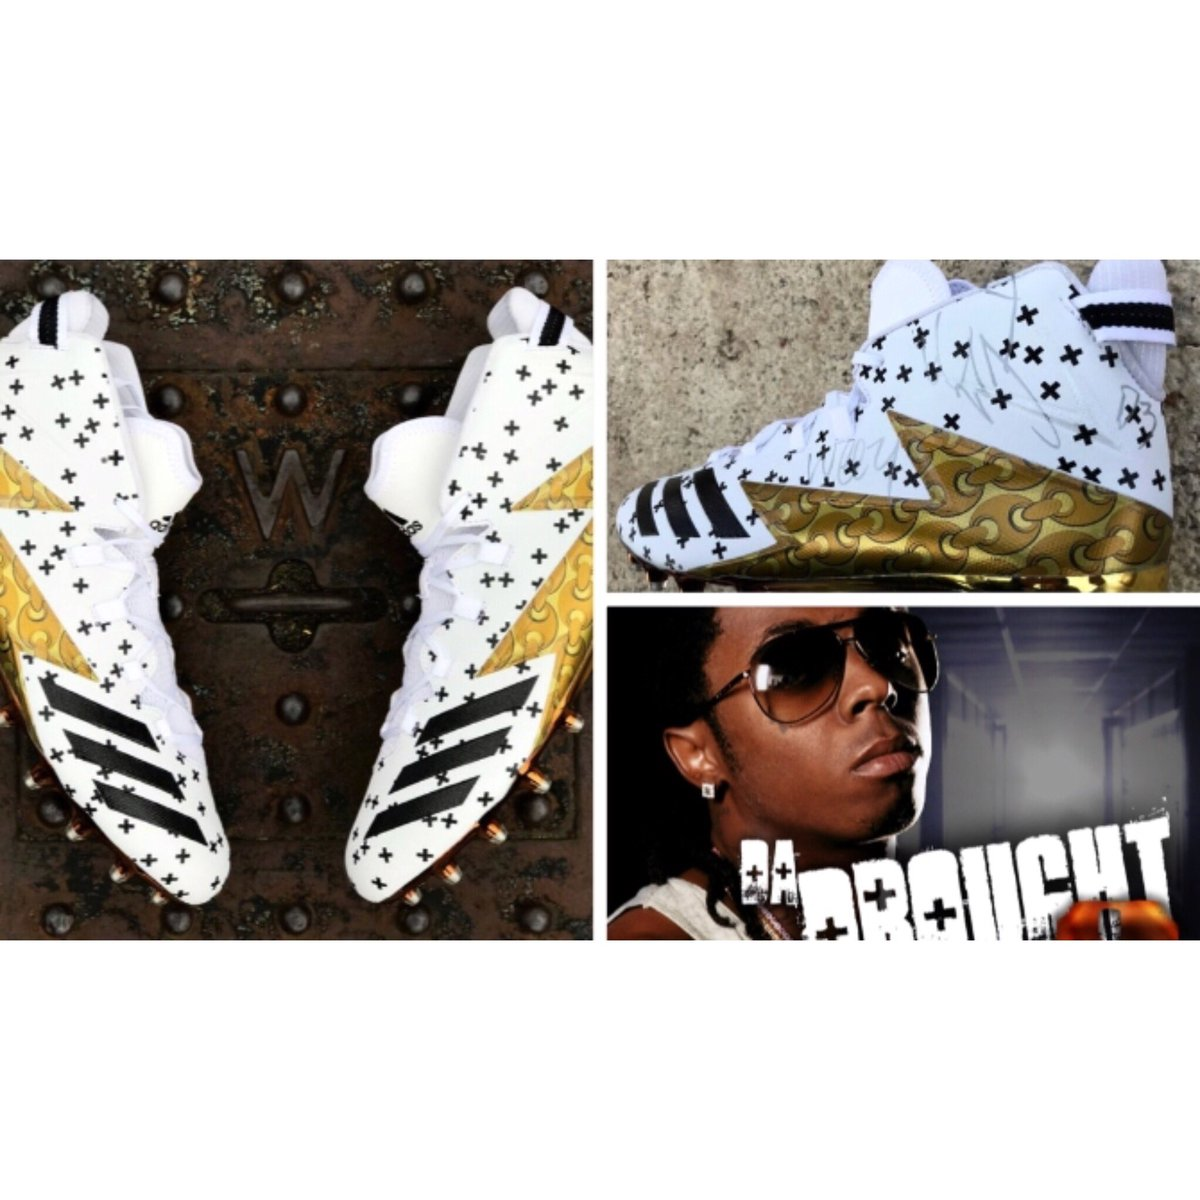 Shout out to my lil bro @vonmiller for creating the cleats dedicated 2 Da Drought 3!! Luv! @adidas #youngmoney https://t.co/CNYLssAS0Y